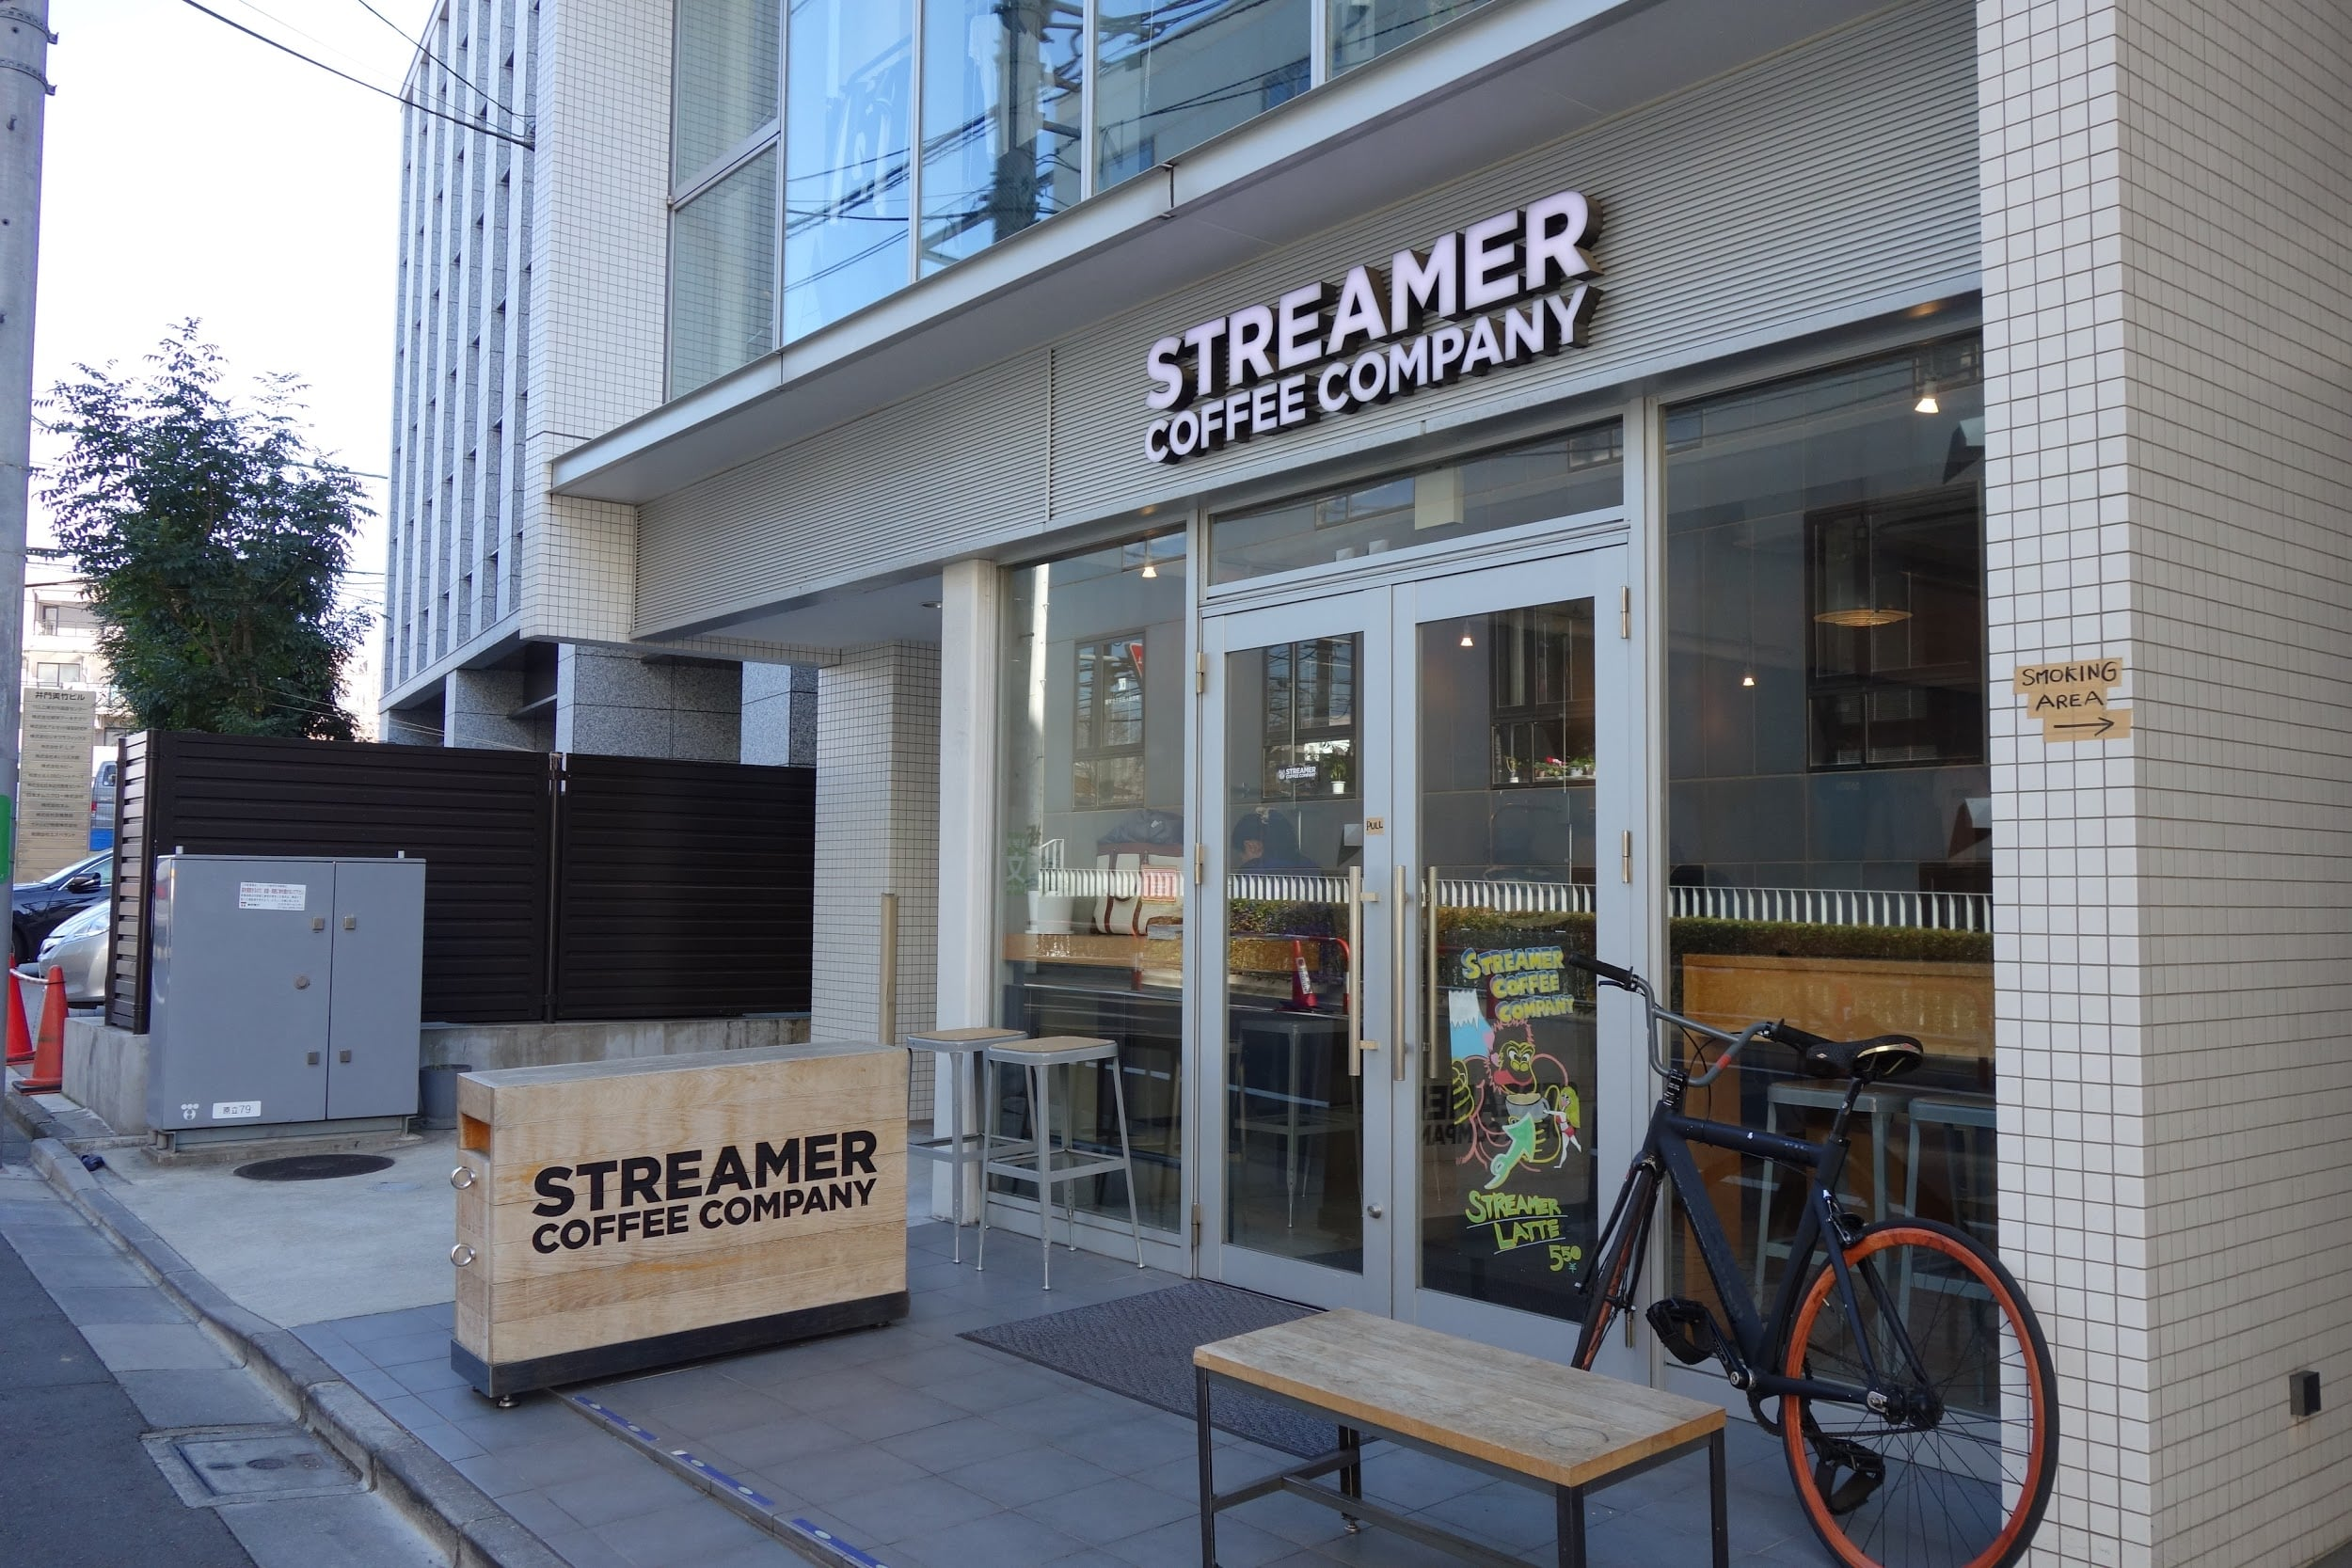 best coffee shop tokyo - Streamer Coffee Company